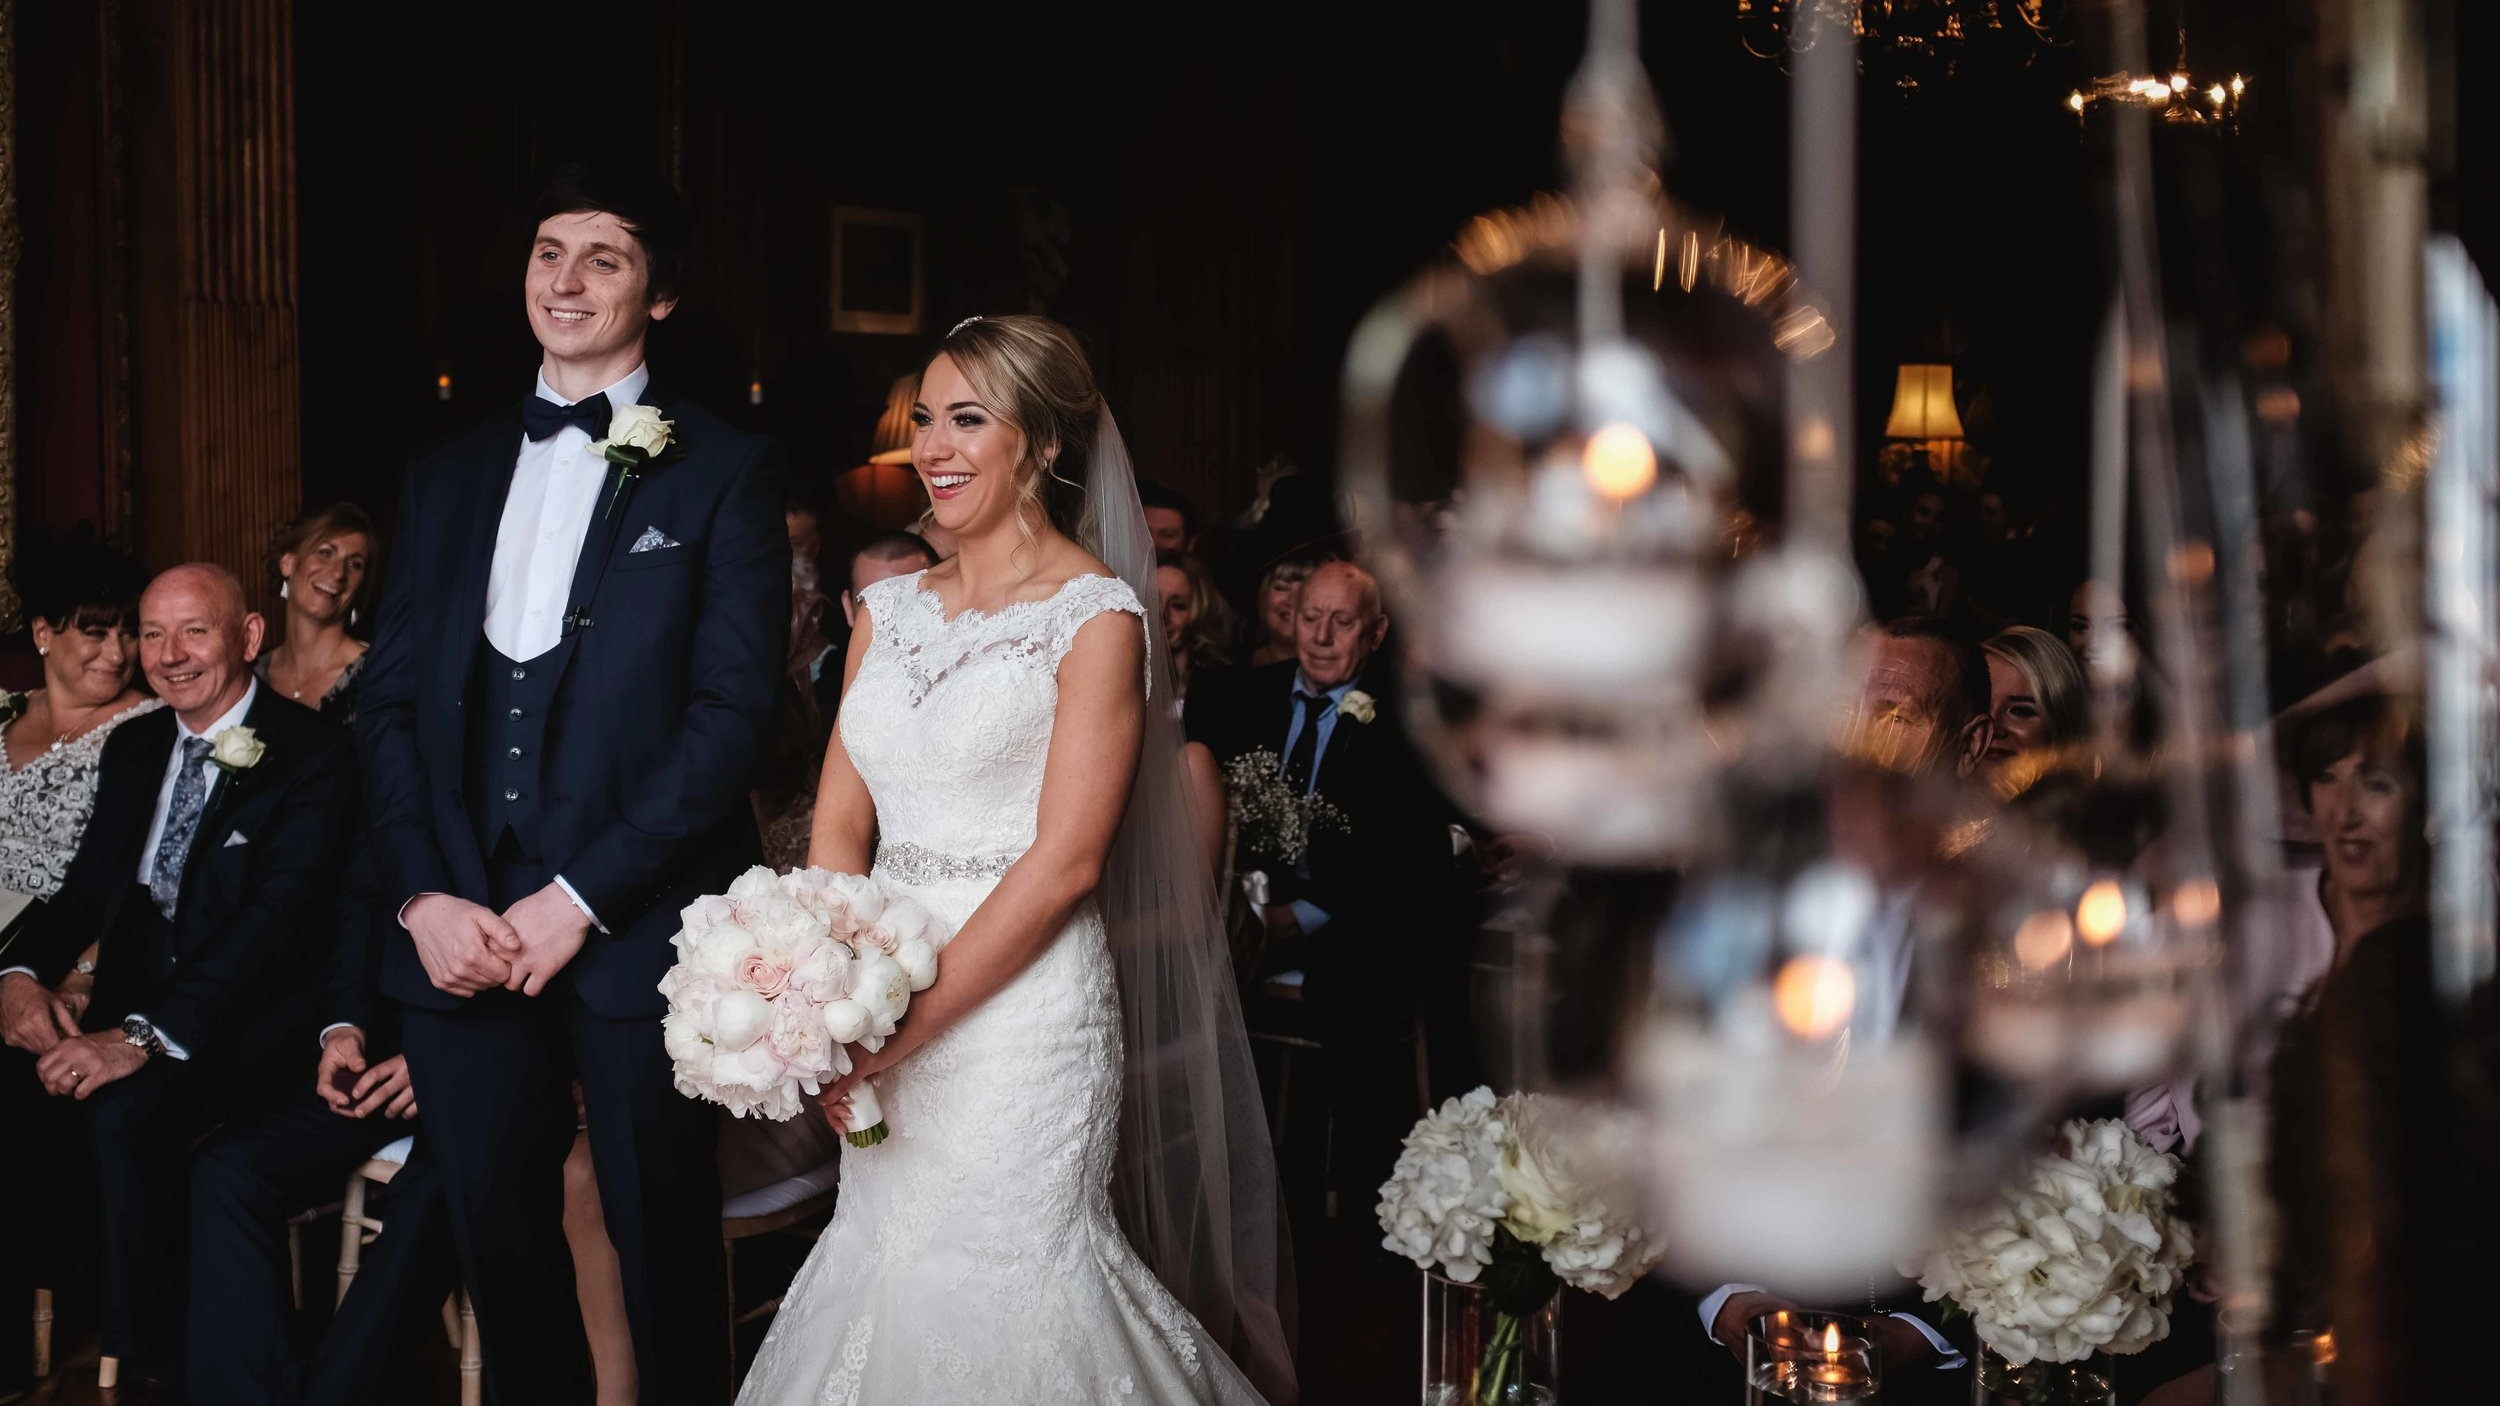 wedding photographers in widnes cheshire covering weddings around the north west of england the uk and destinations abroad (43 of 115).jpg